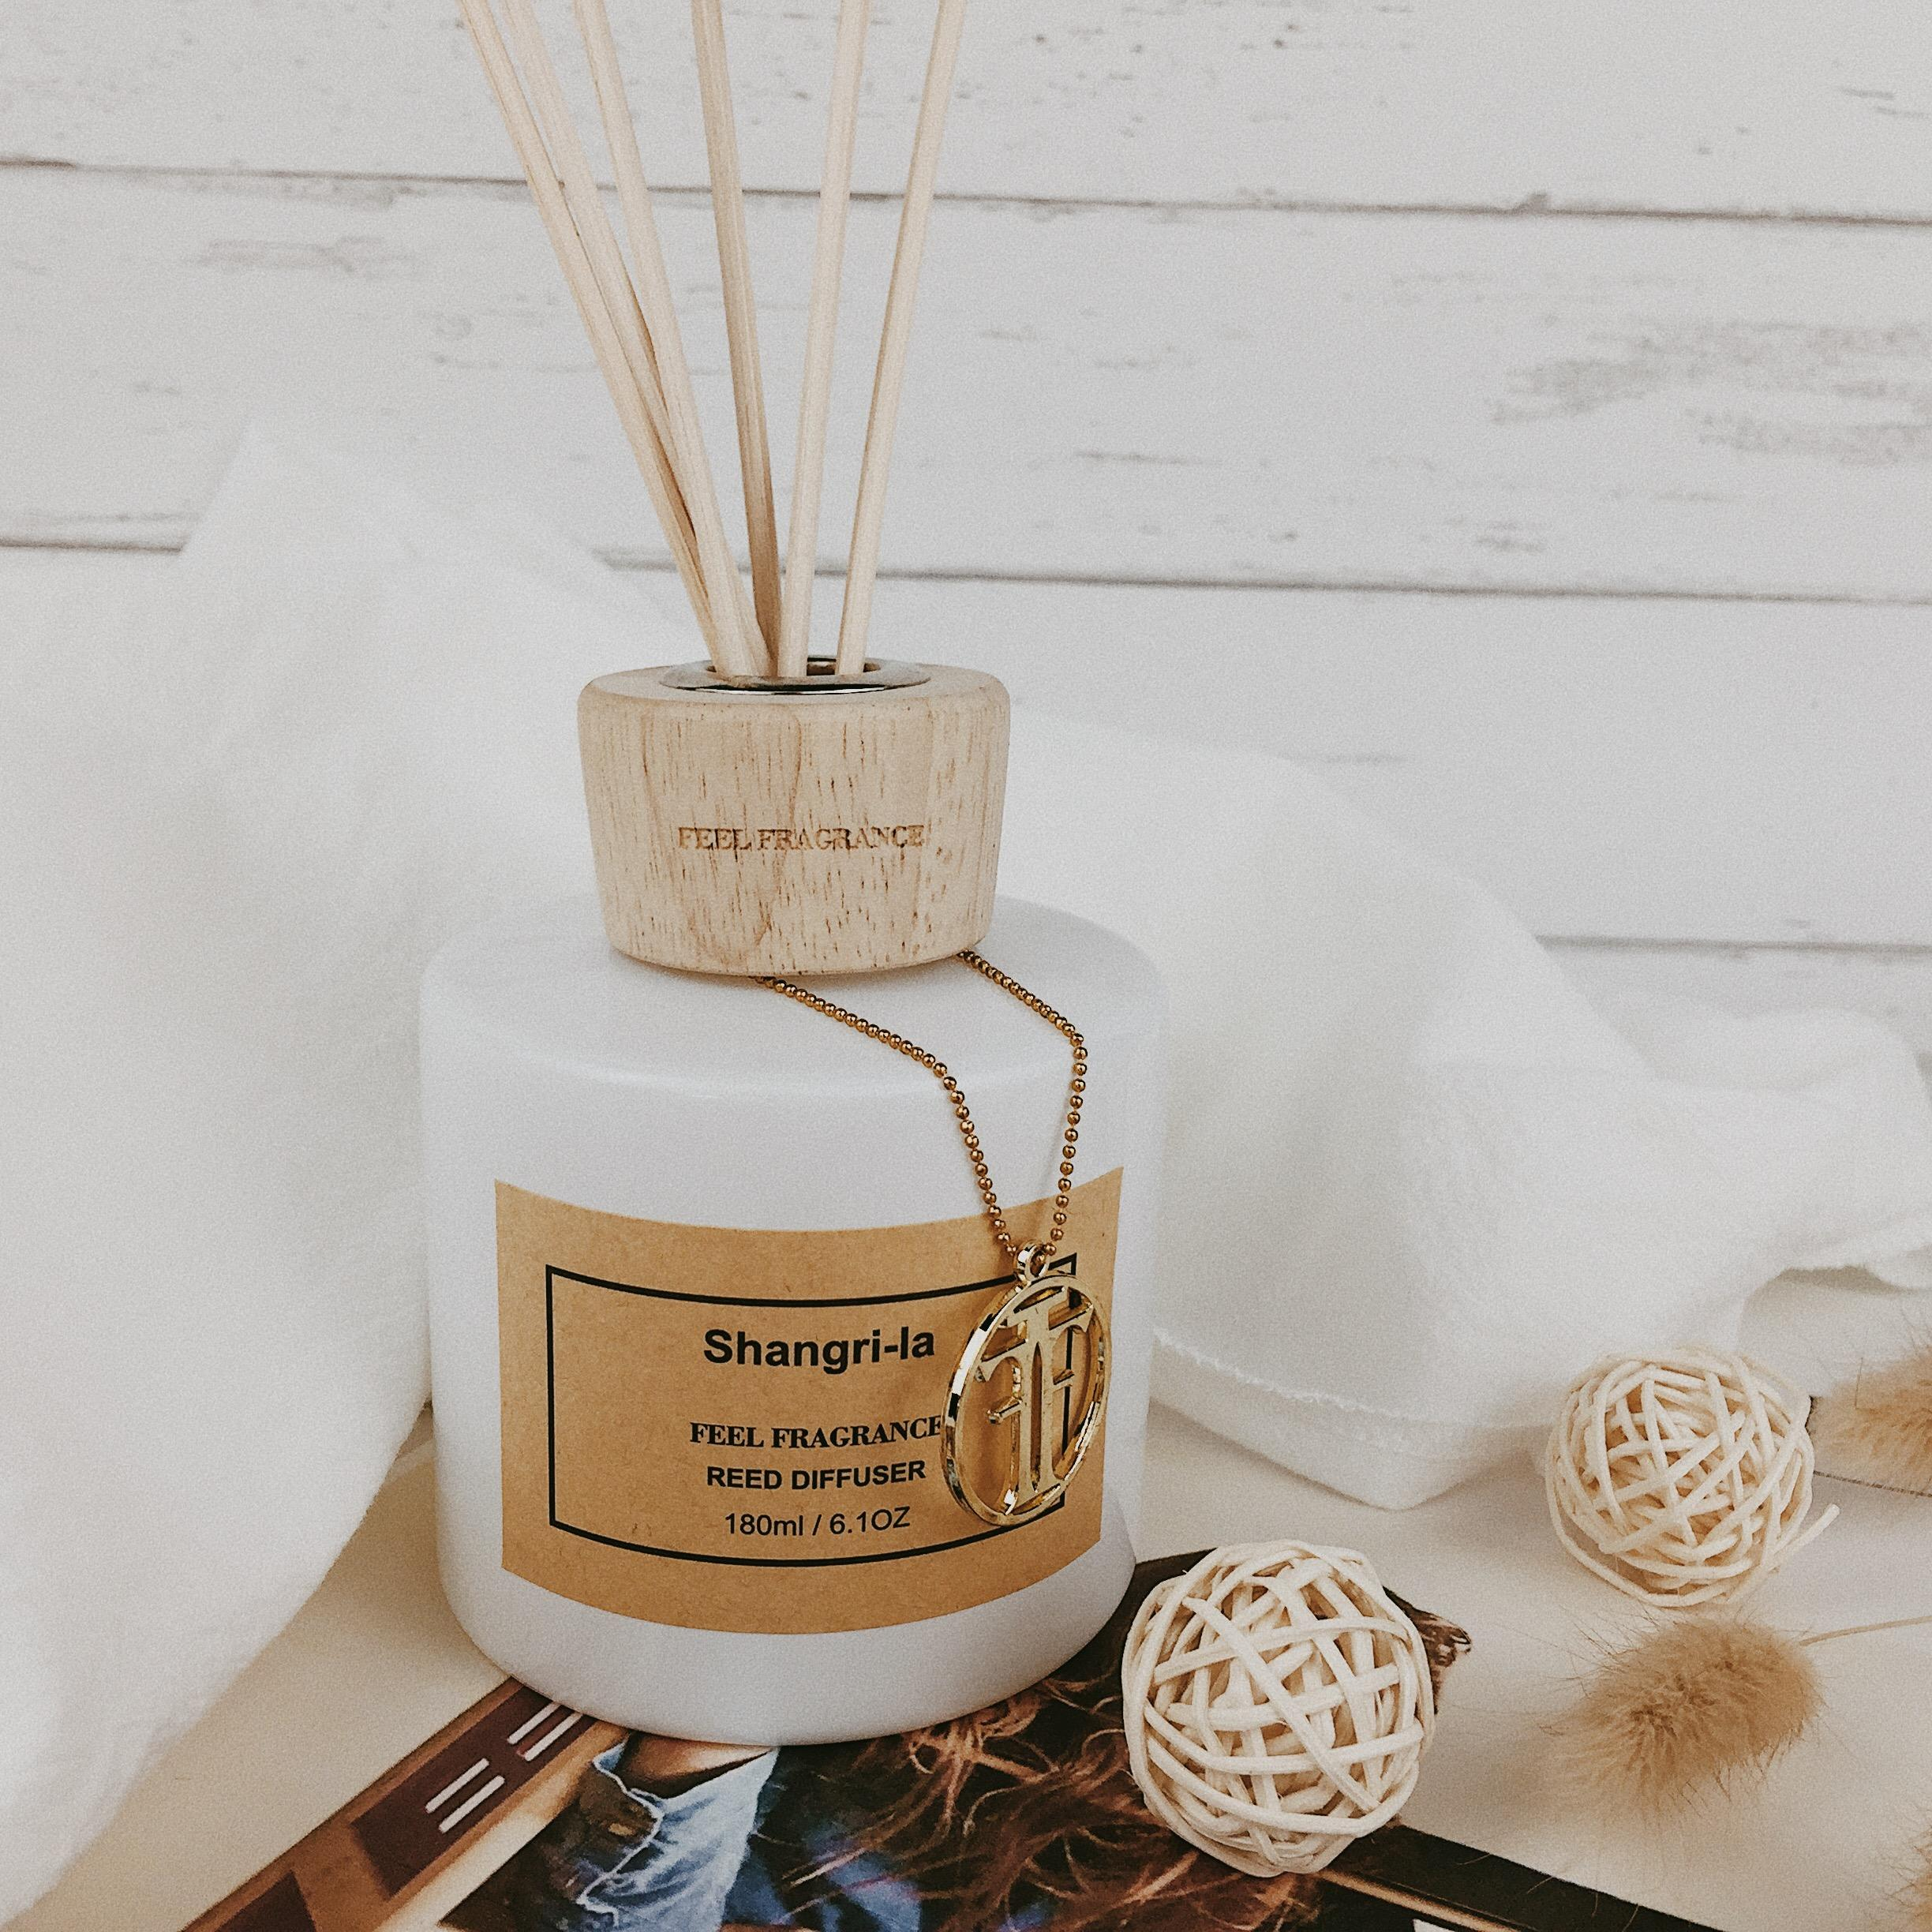 Hot selling and long-lasting reed diffuser for home